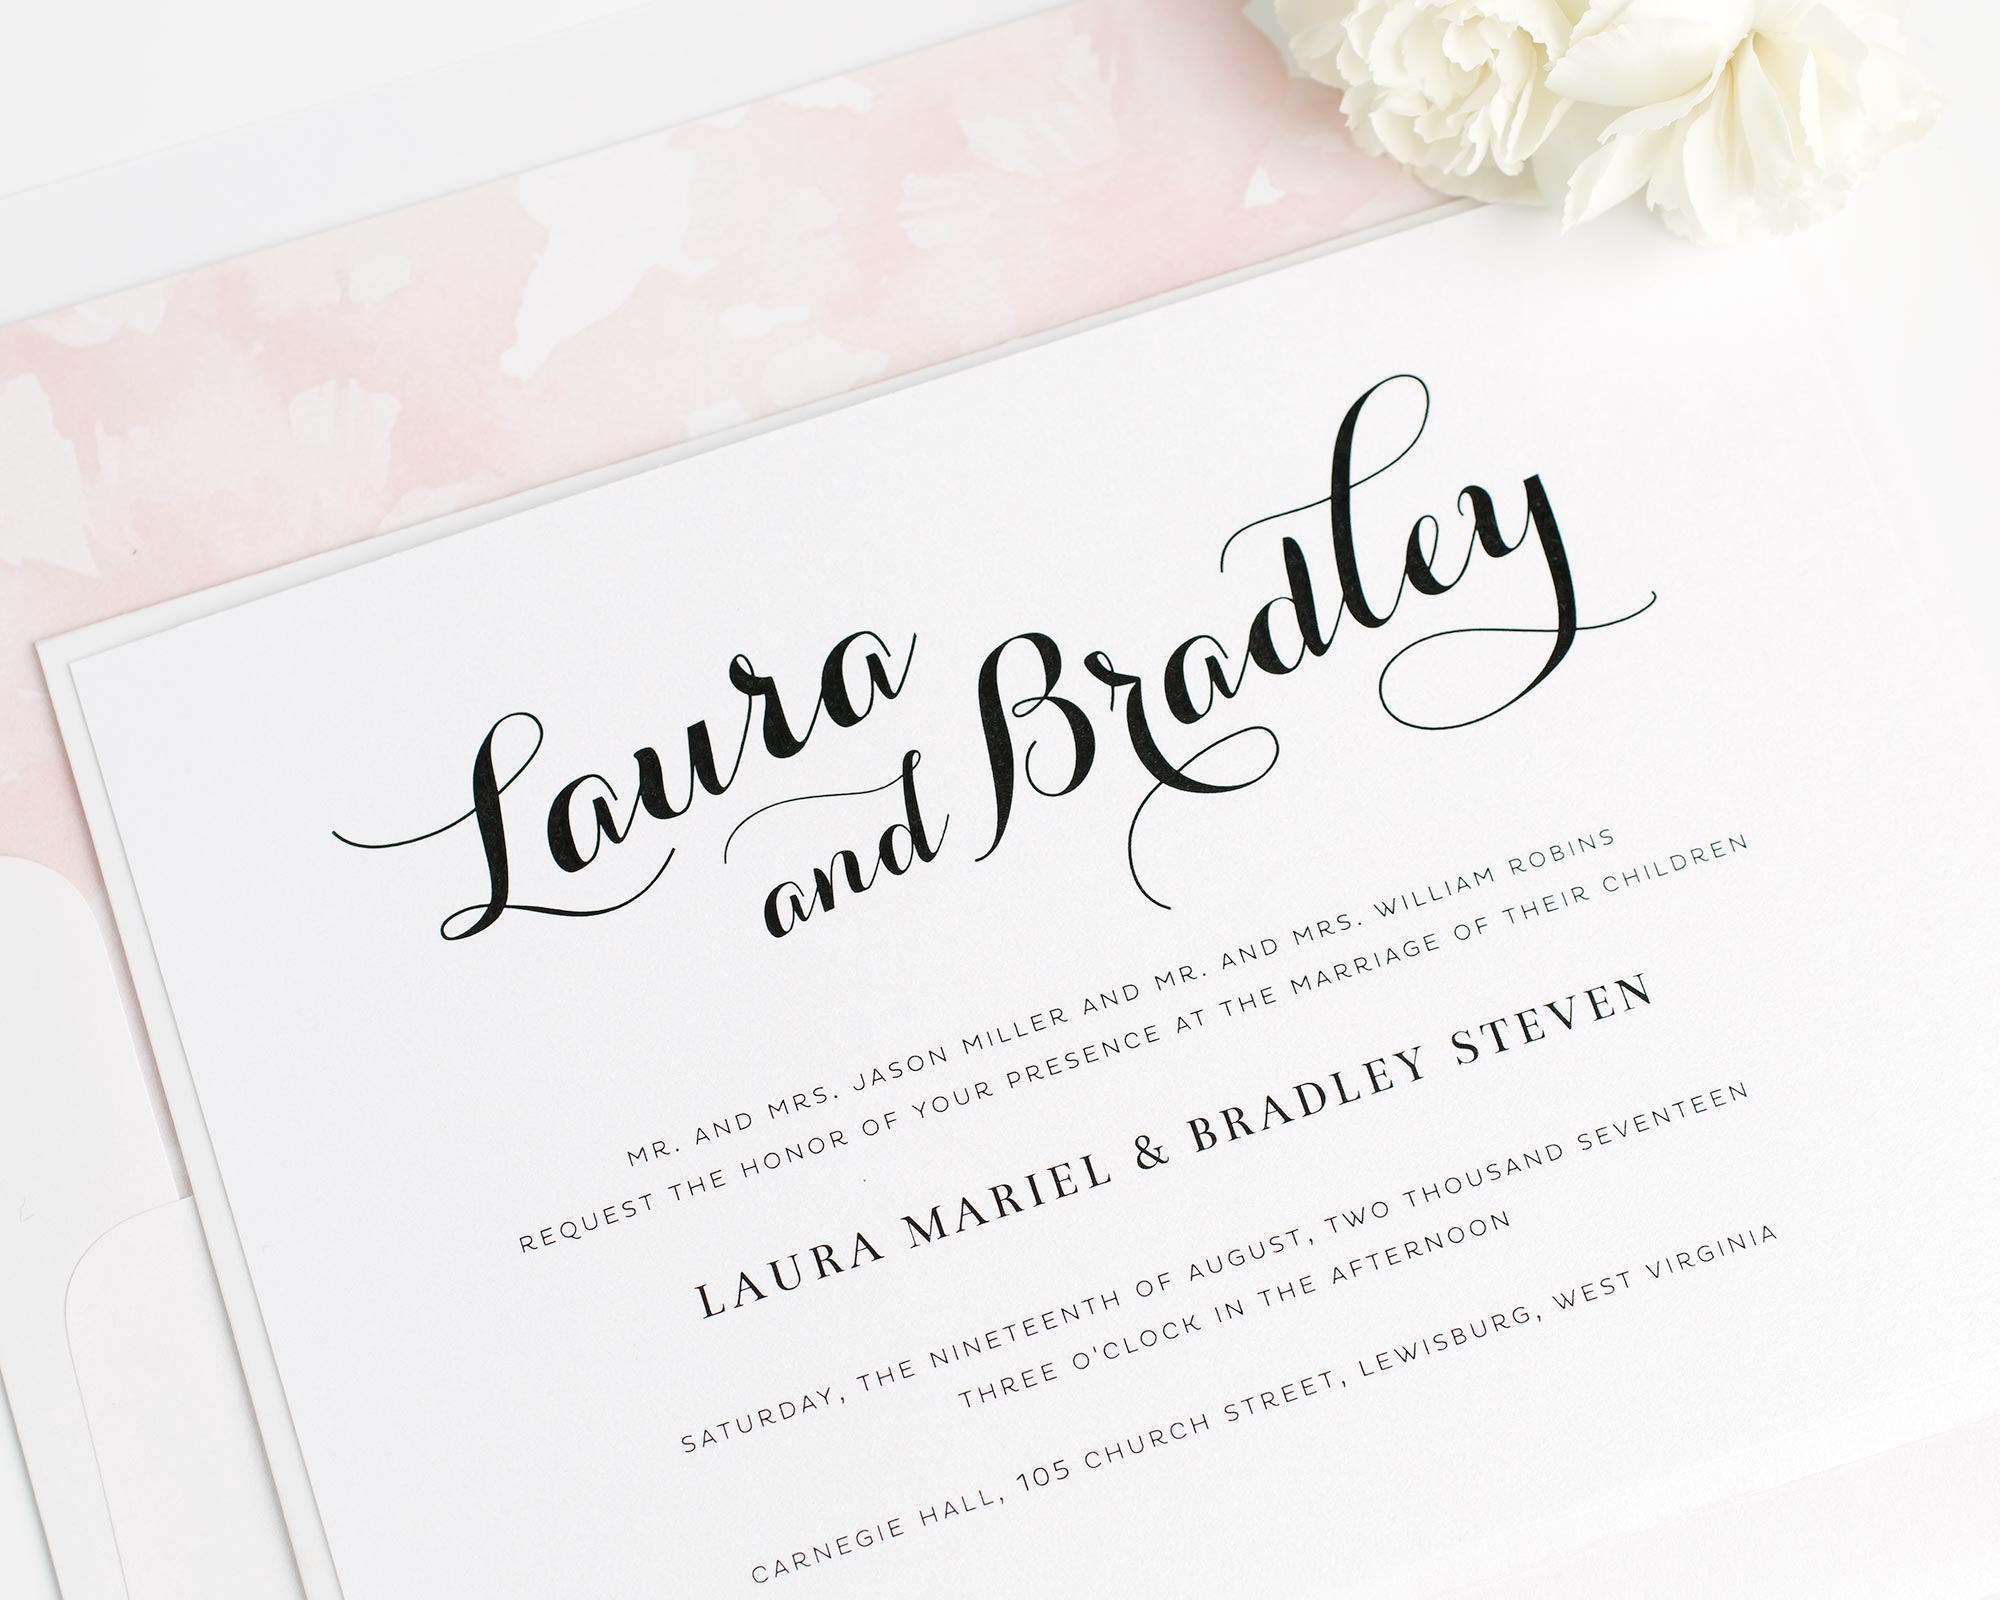 Romantic Blush Wedding Invitations with Bold Calligraphy and Floral Watercolor Design